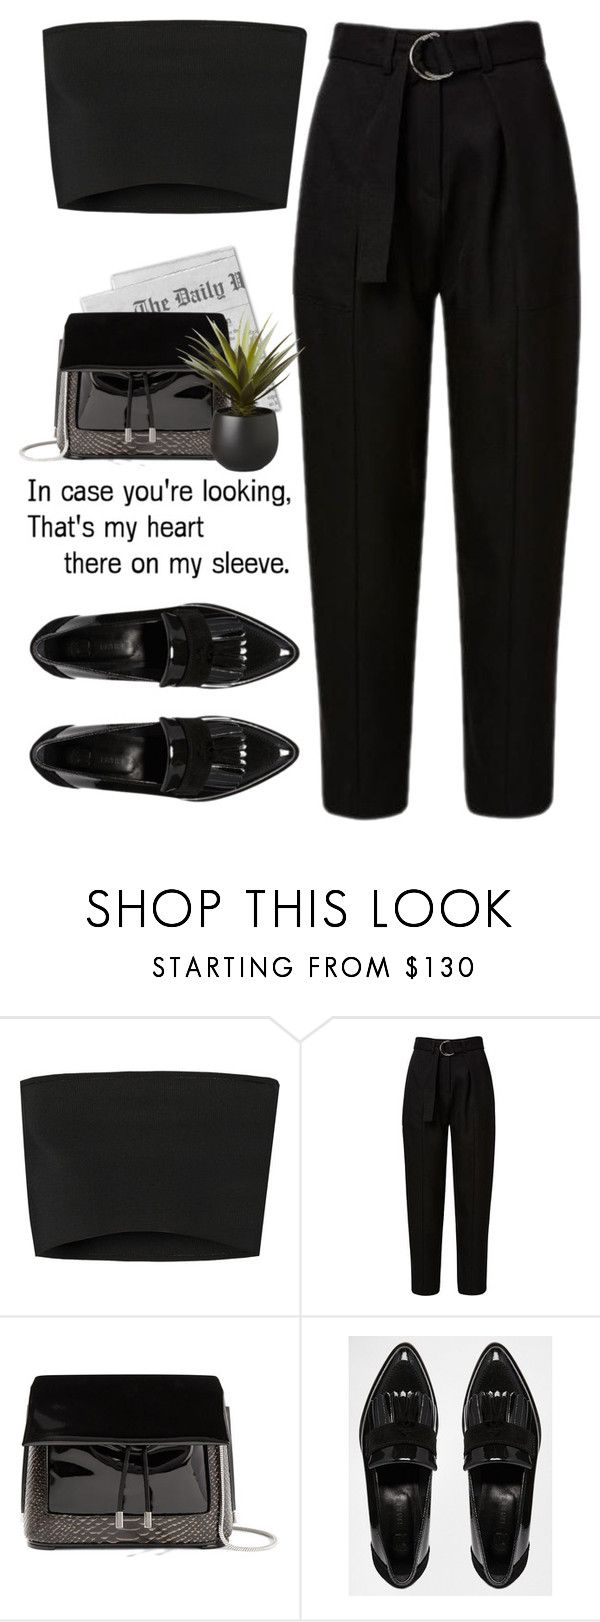 """- Lordly -"" by lolgenie ❤ liked on Polyvore featuring Calvin Klein Collection, 3.1 Phillip Lim, River Island and CB2"